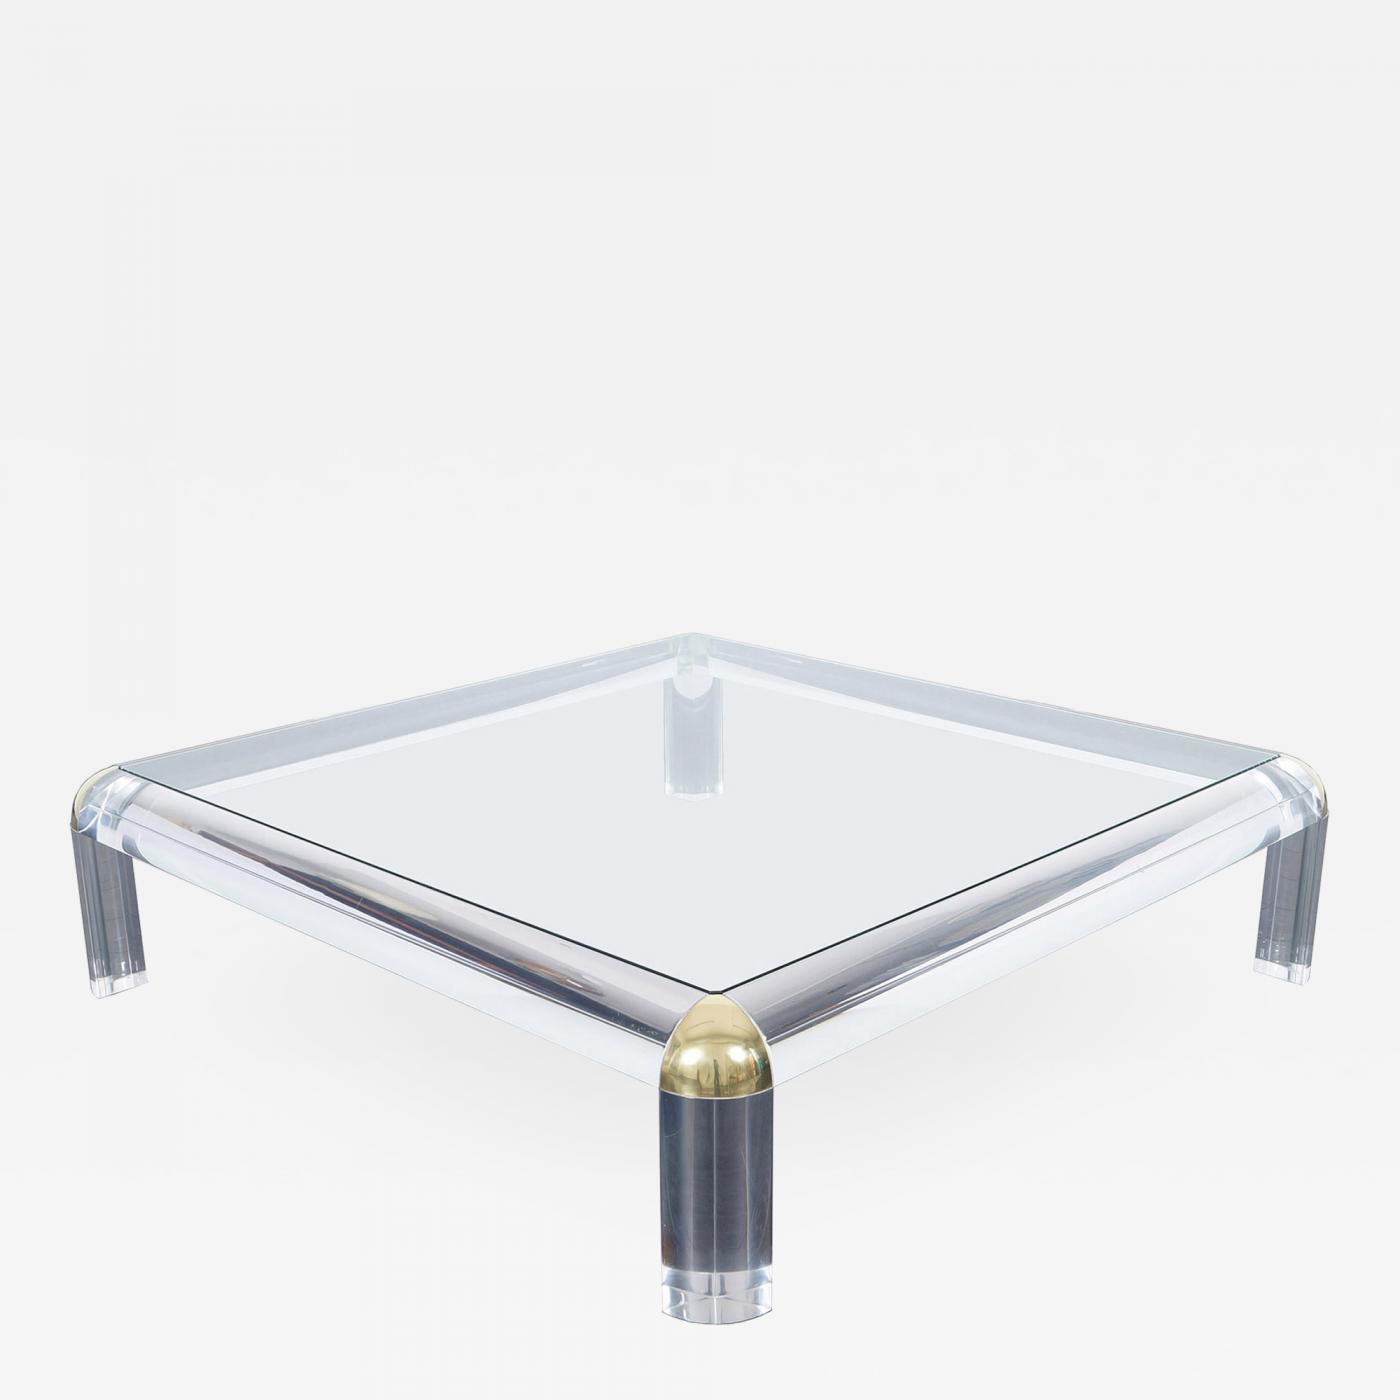 Karl springer monumental lucite brass coffee table for Lucite and brass coffee table